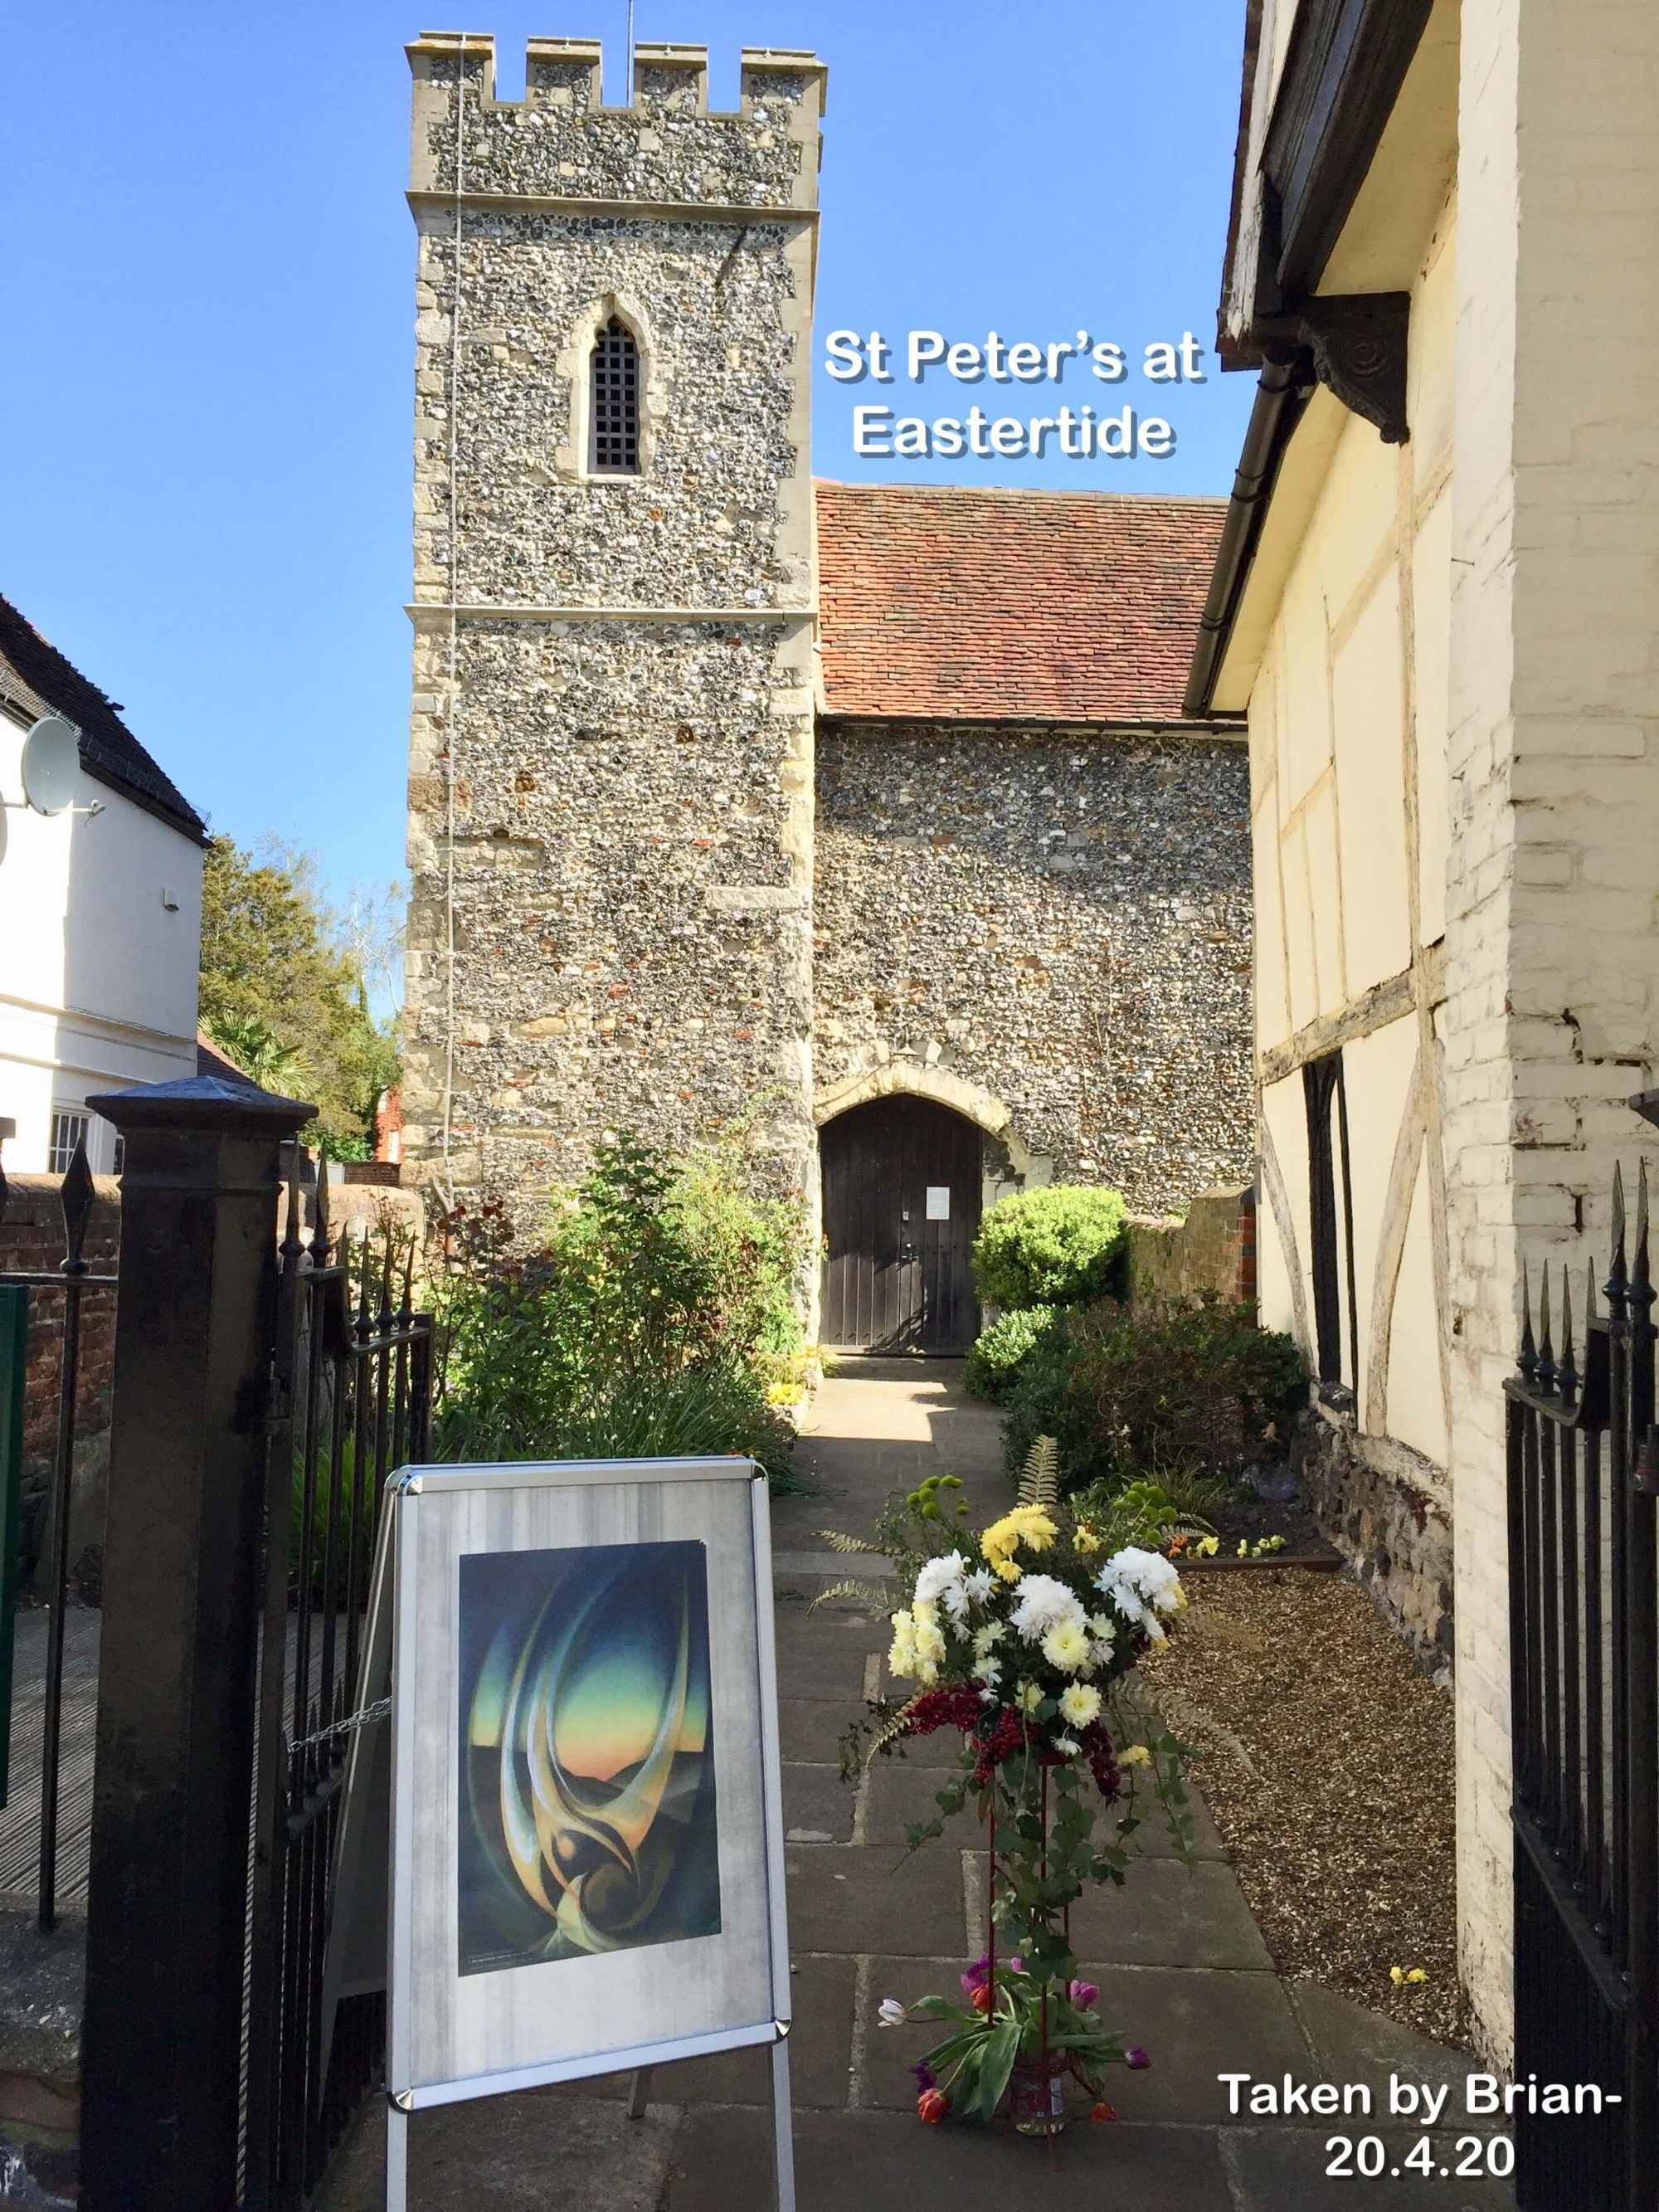 St Peter's at Eastertide.